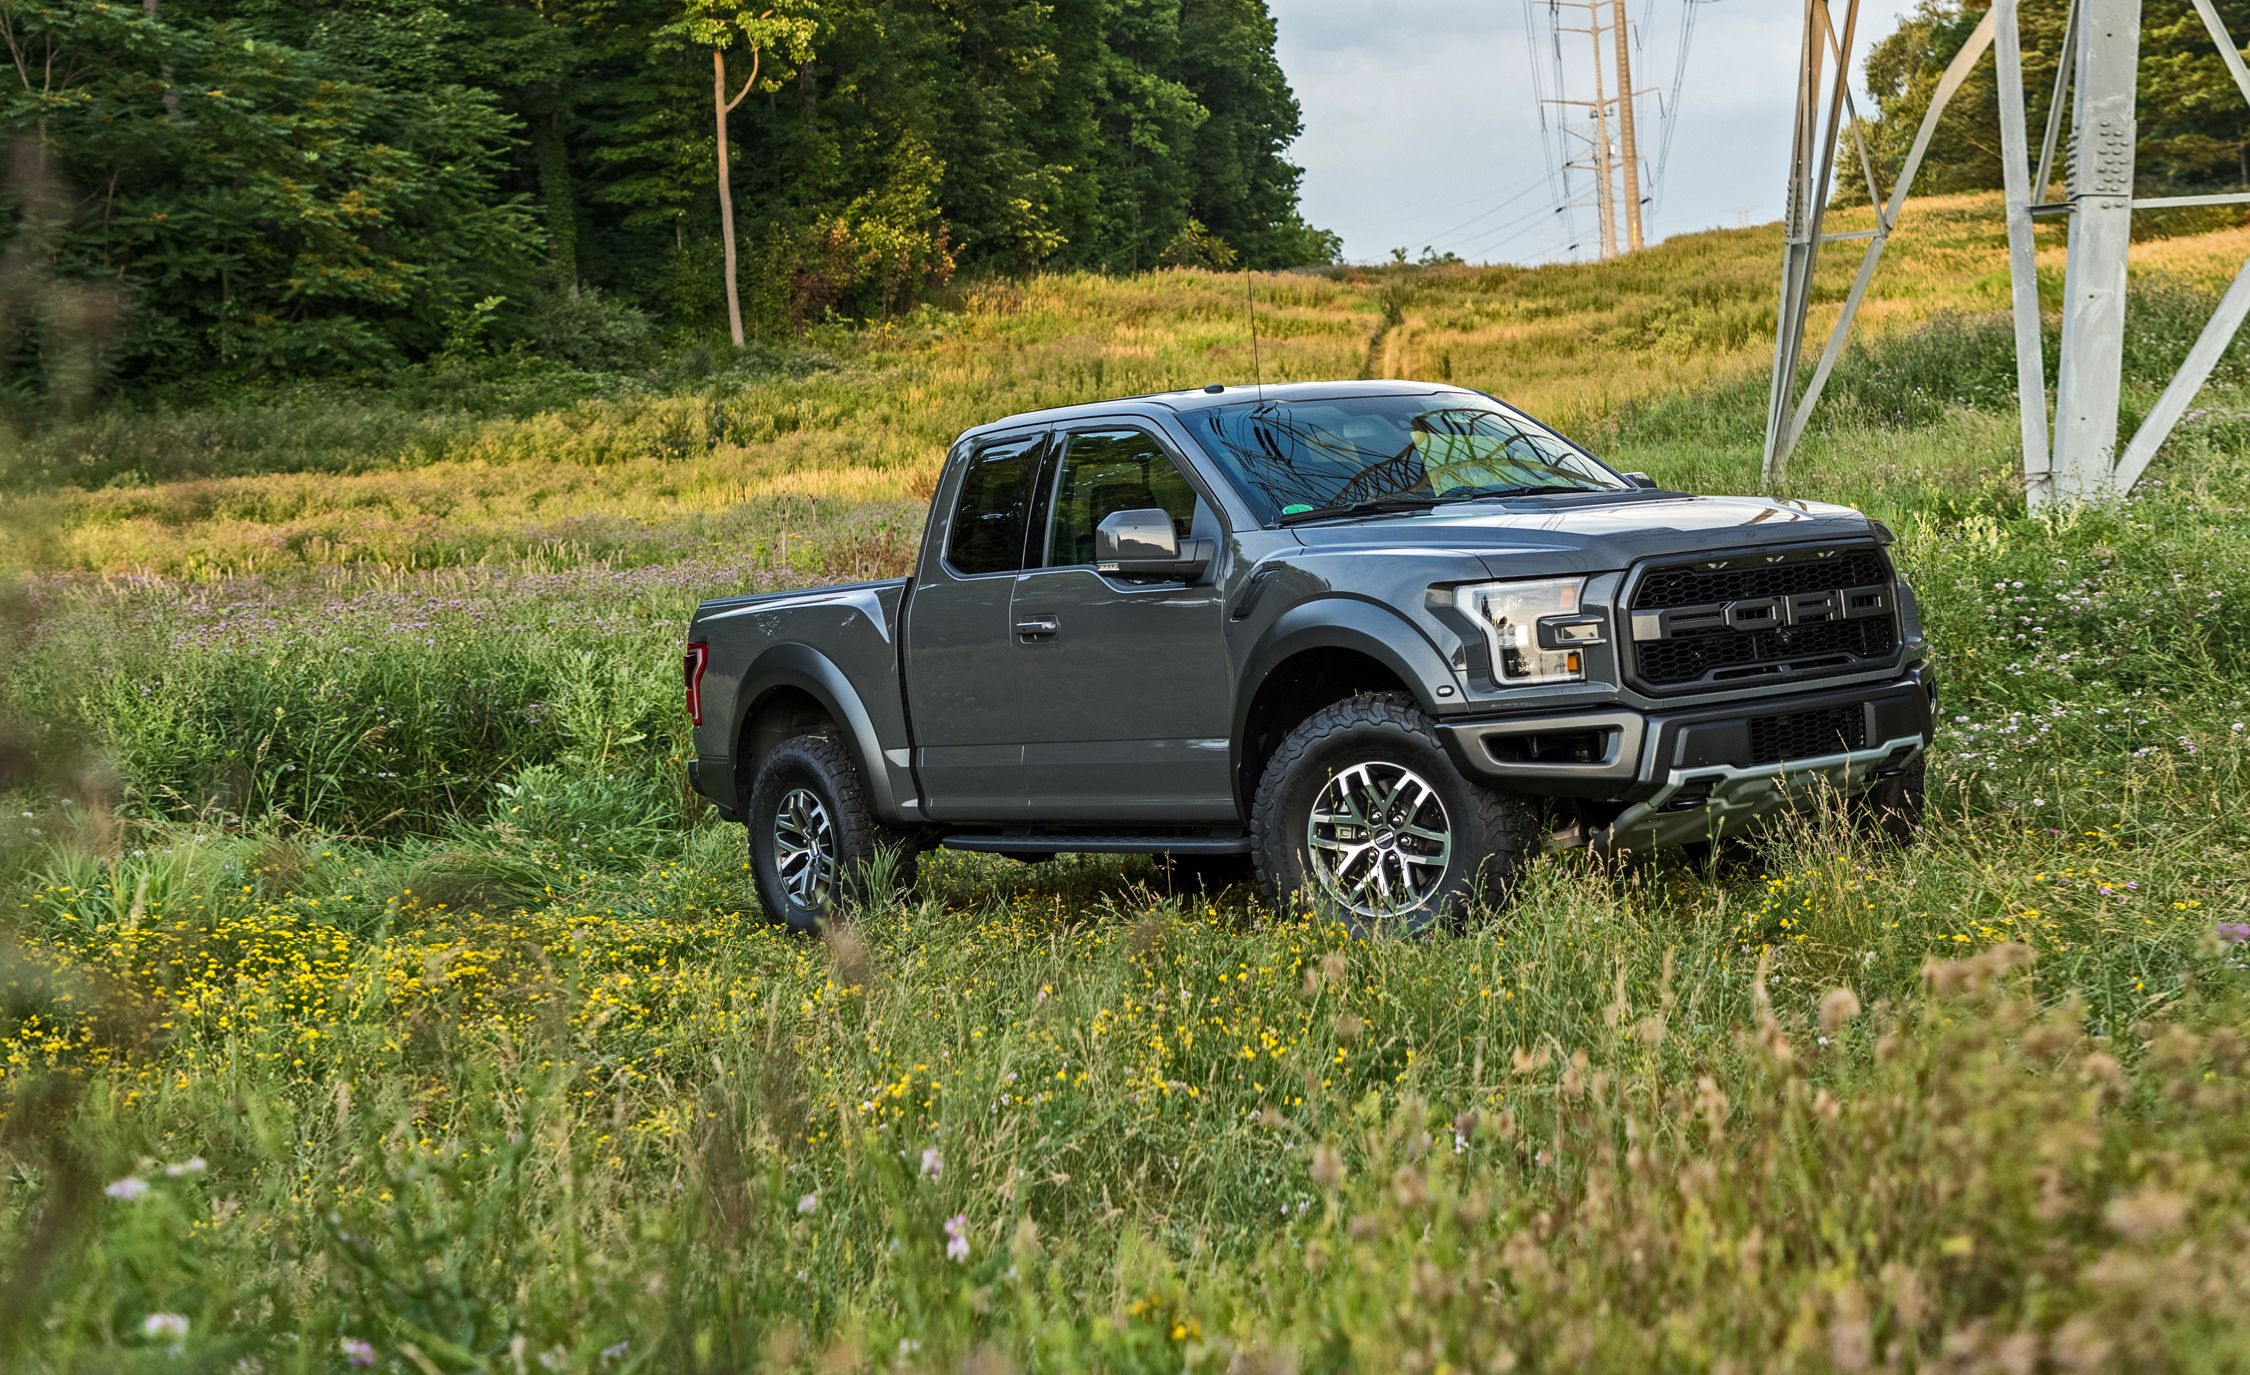 Ford F 150 Raptor Supercab S Shorter Wheelbase Makes It An Even Better Desert Racer